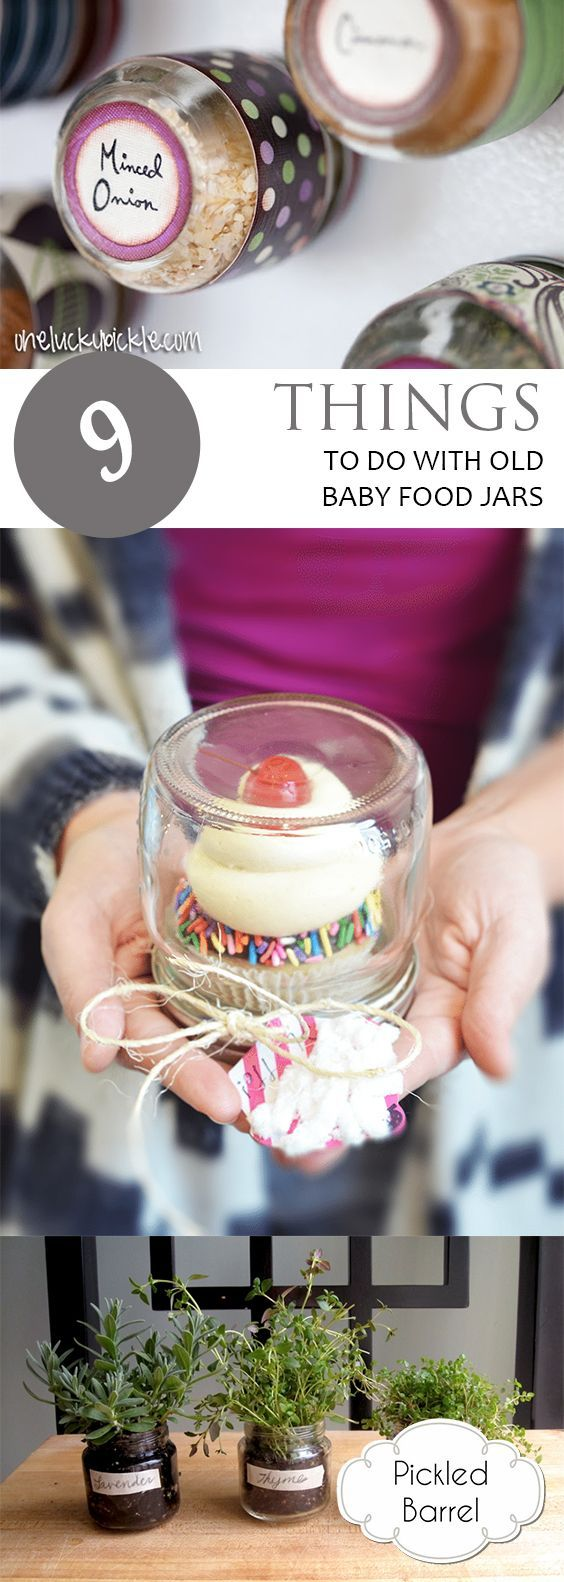 9 Things To Do With Old Baby Food Jars